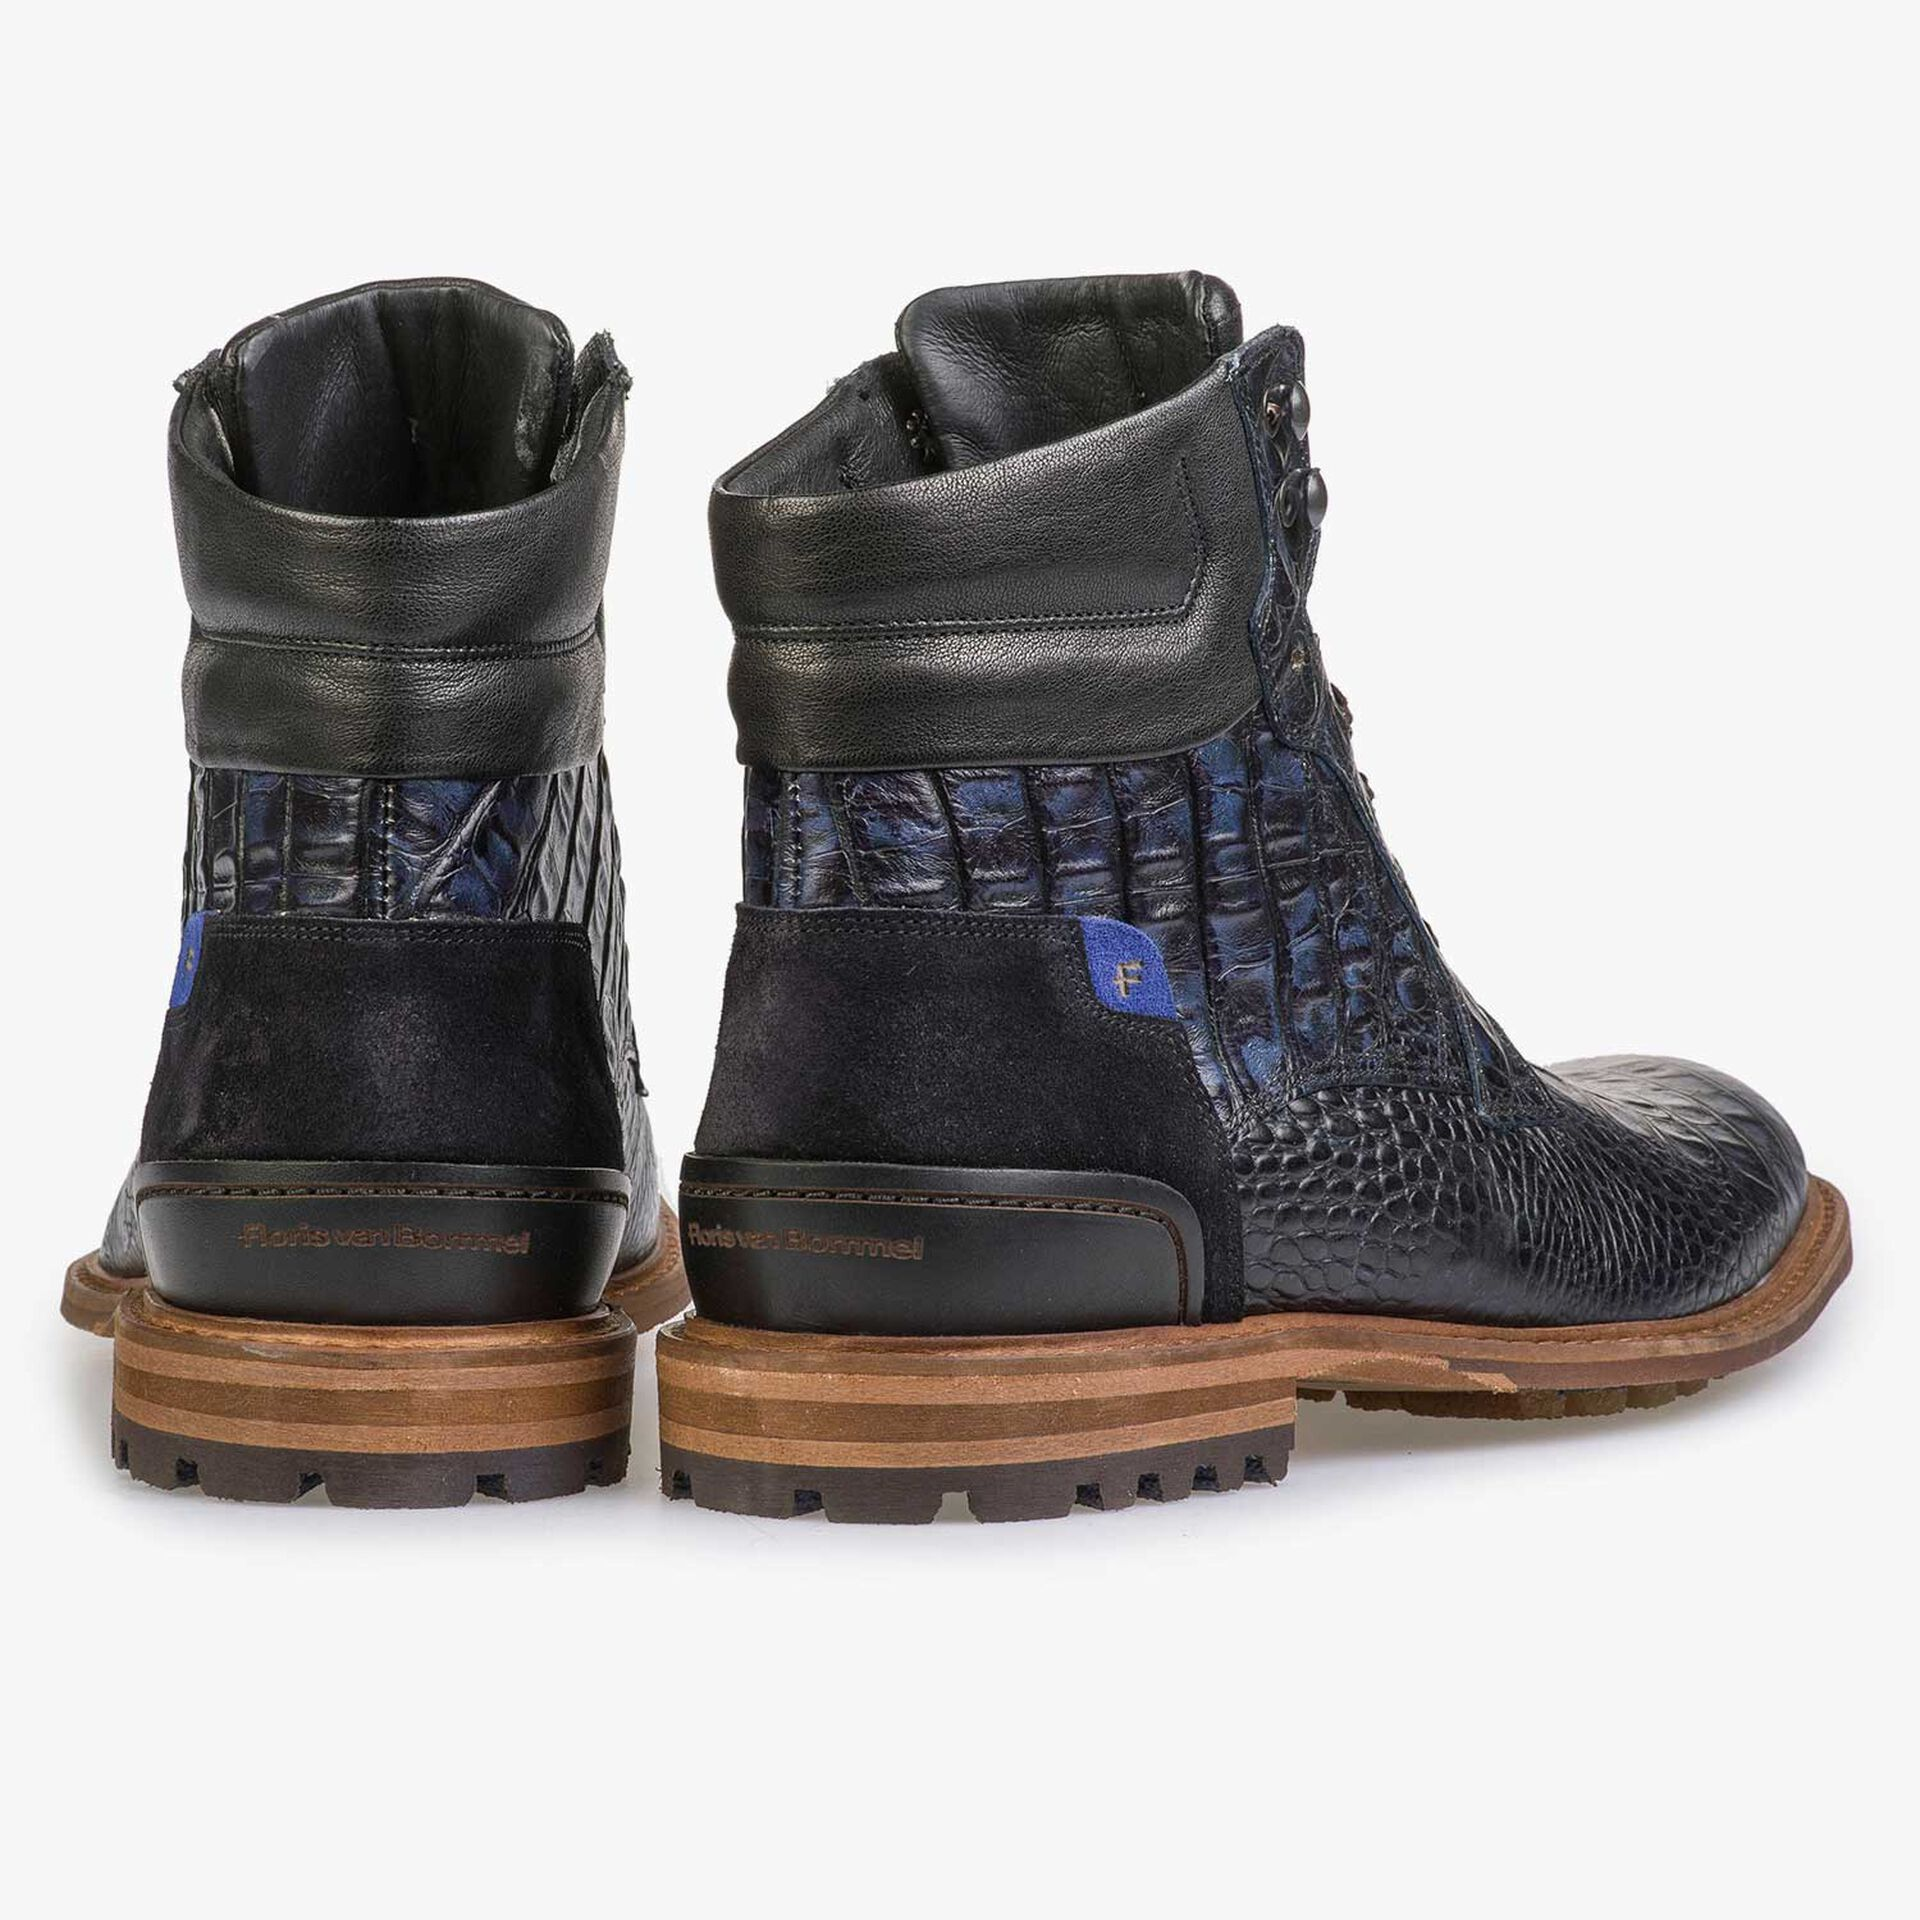 Blauwe kalfsleren crocoprint veterboot